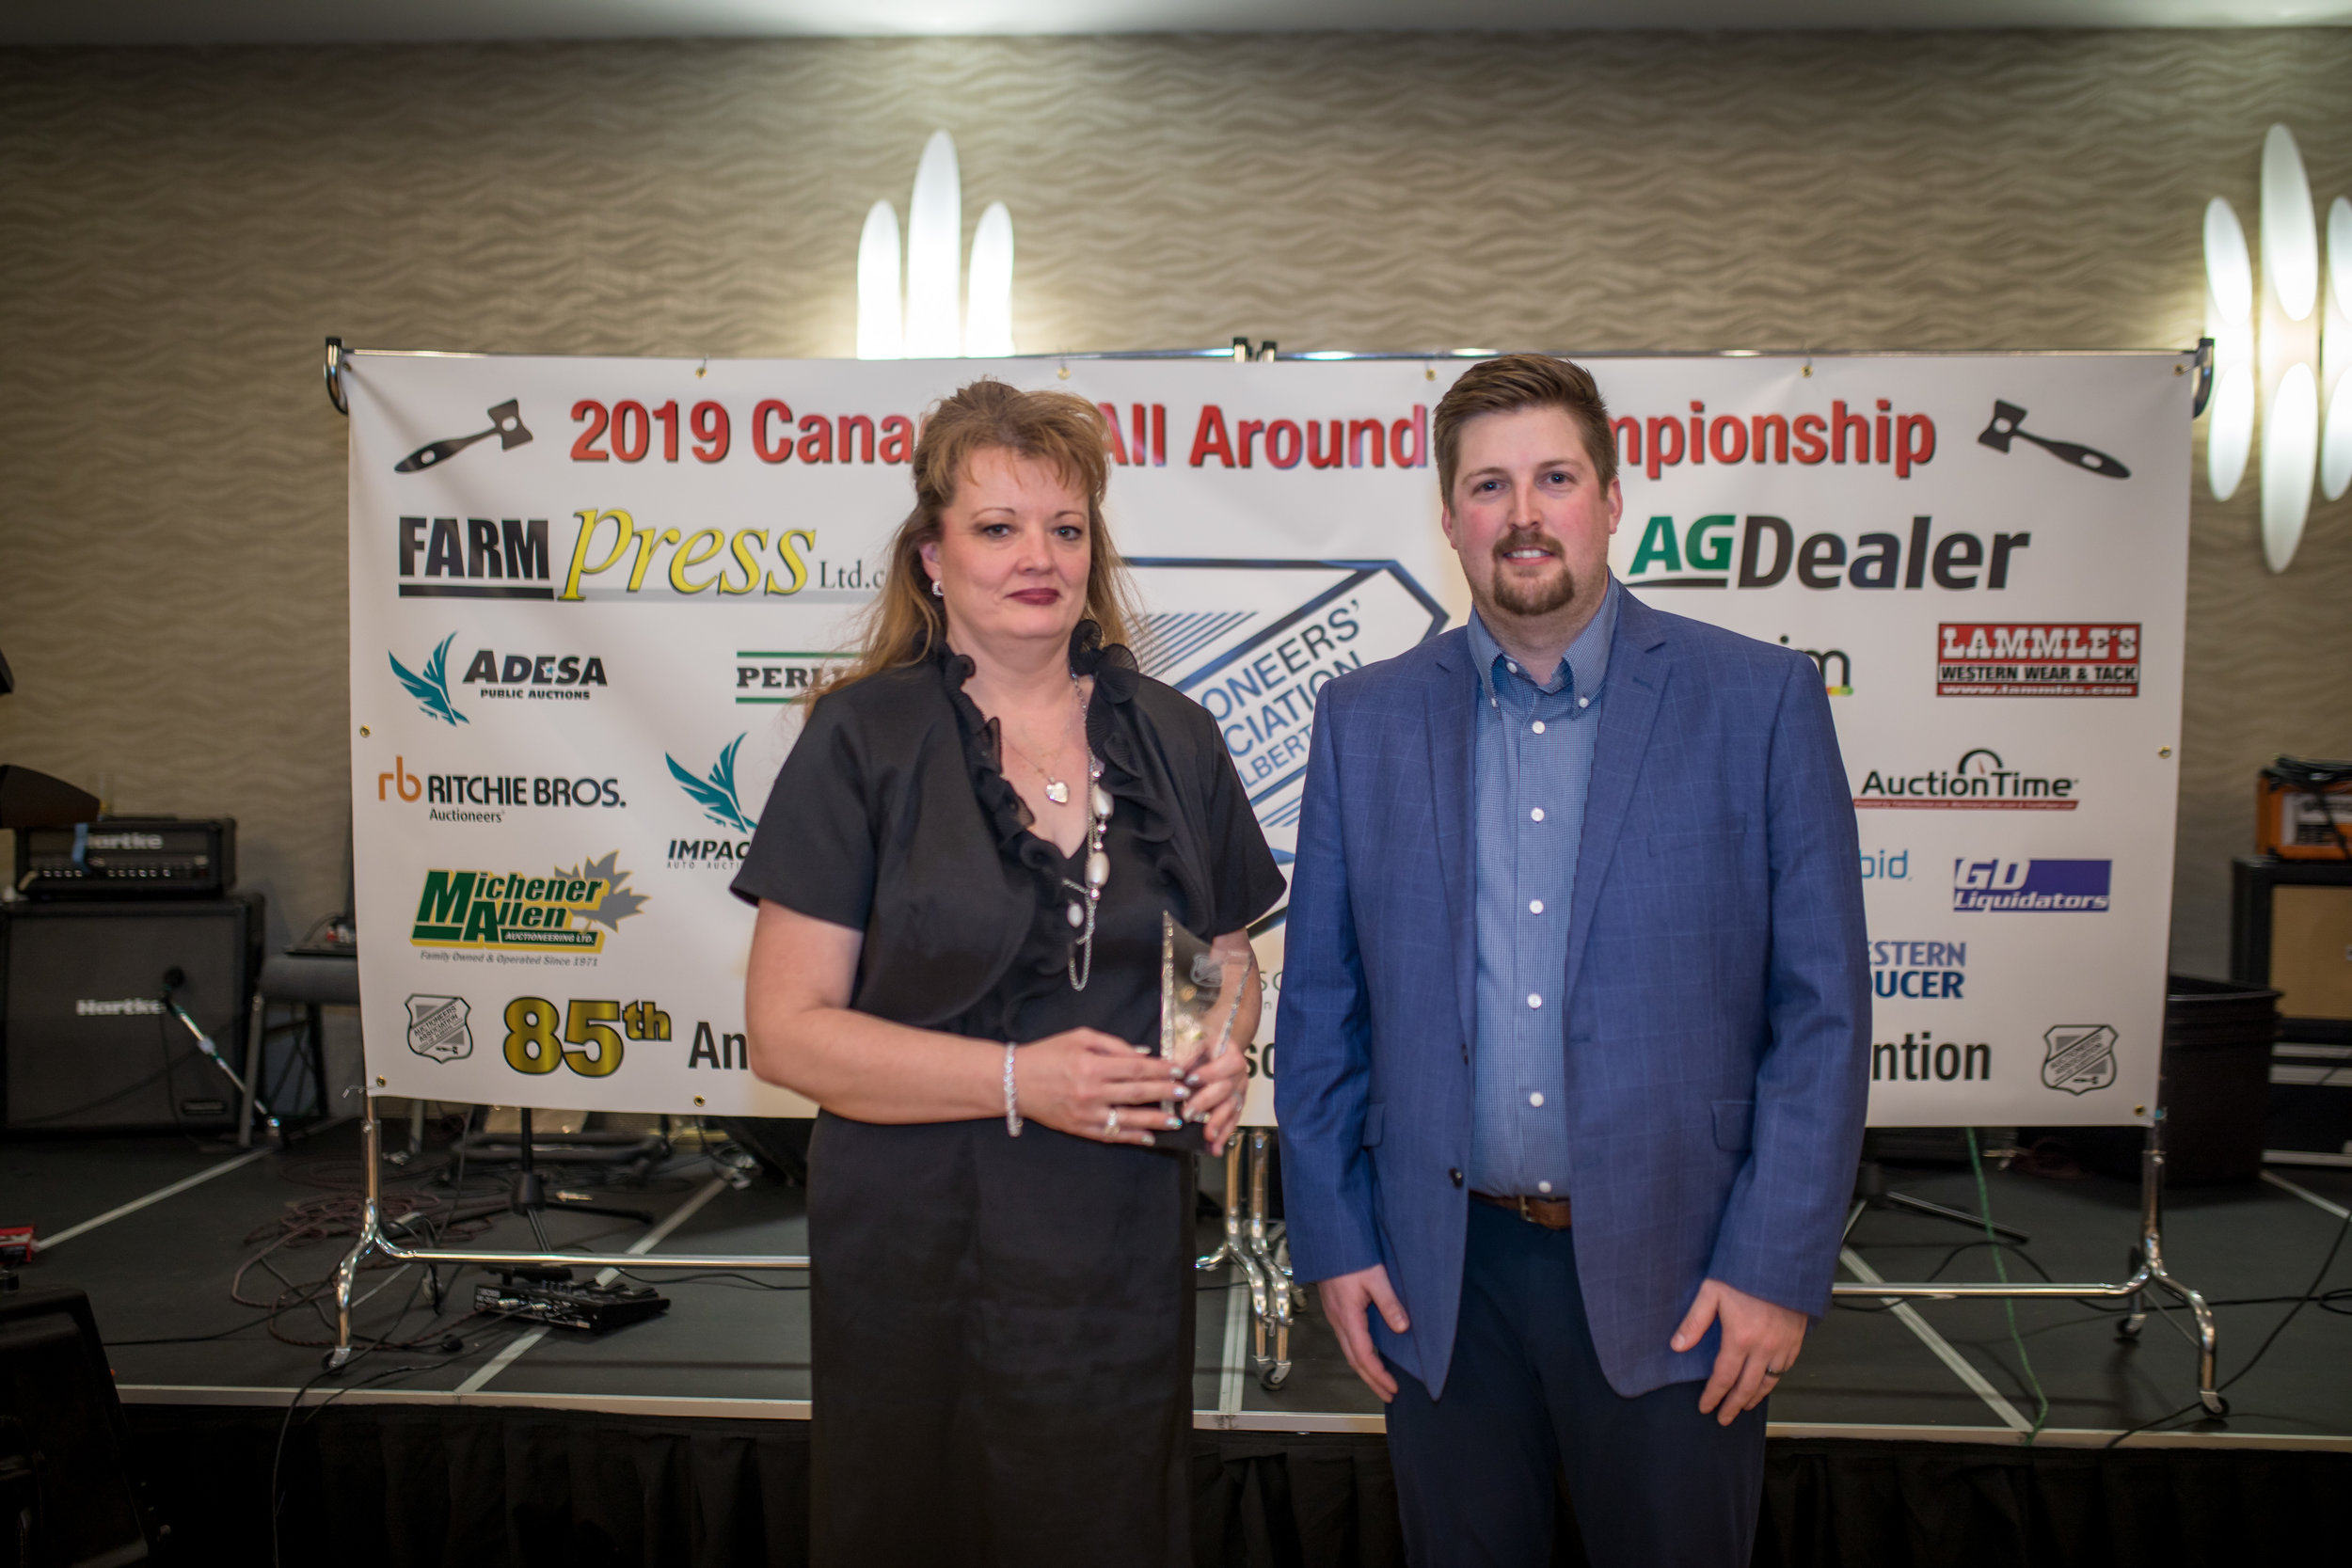 2019 02-02 Alberta Auctioneer Convention Day 03 - Calgary 63.jpg